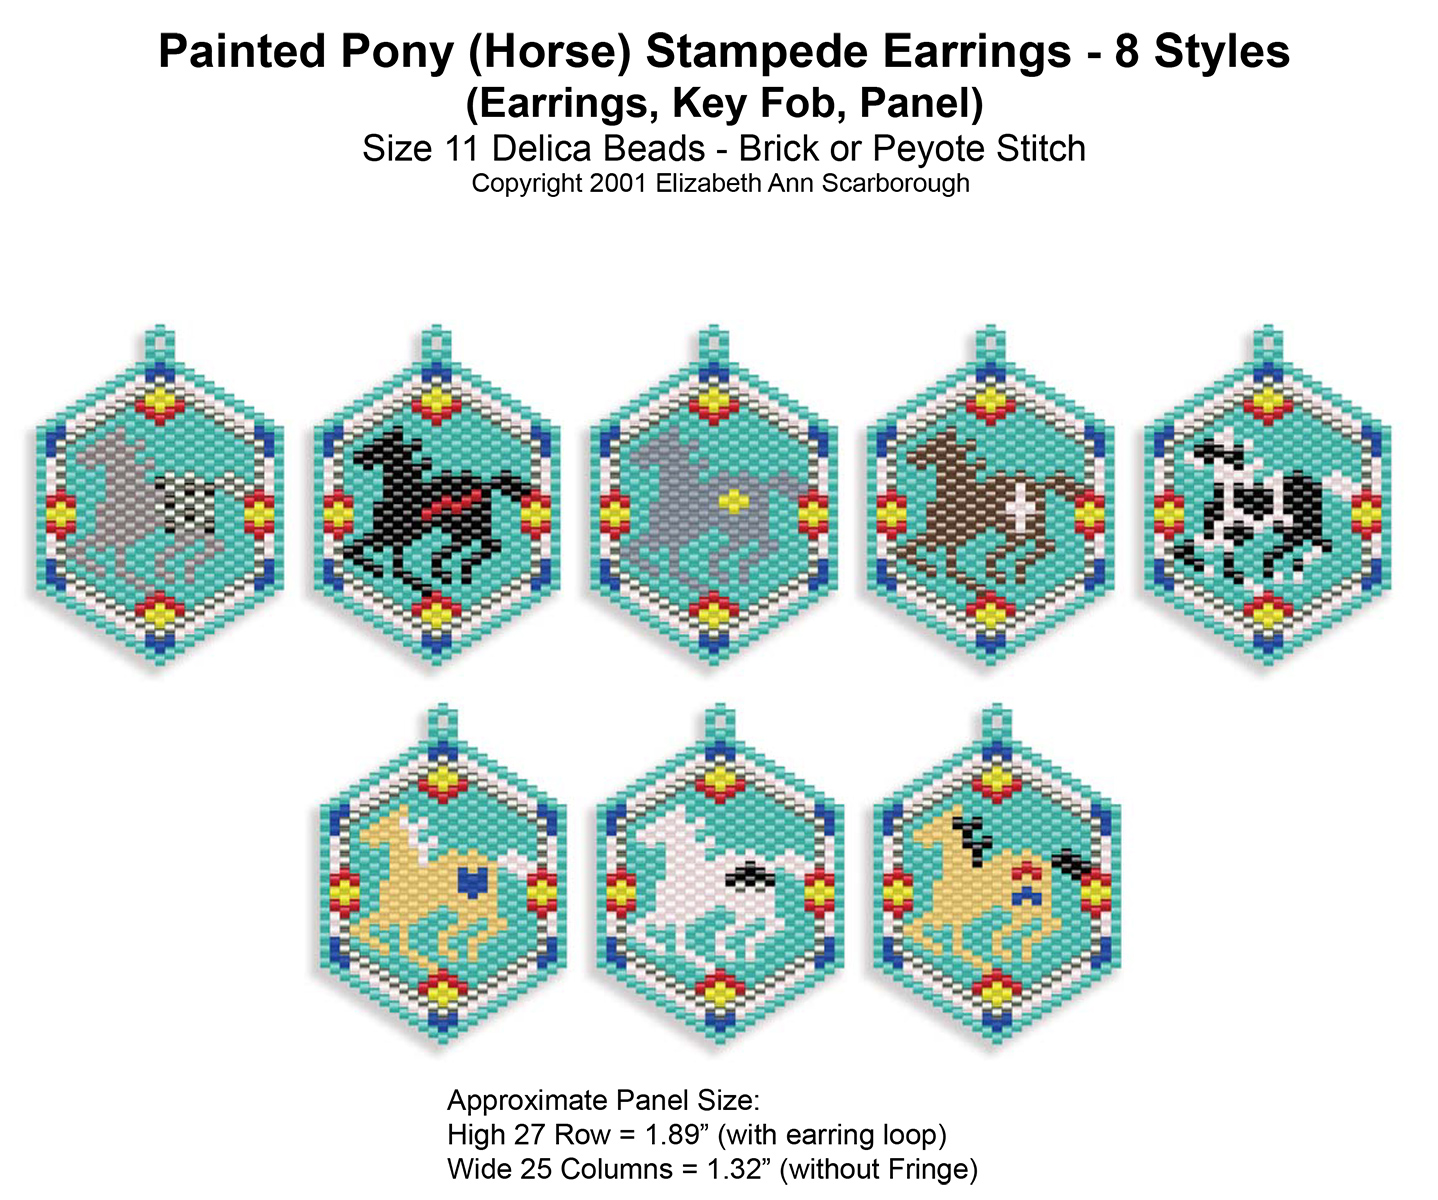 Painted Pony (Horse) Stampede Earrings 8 Styles